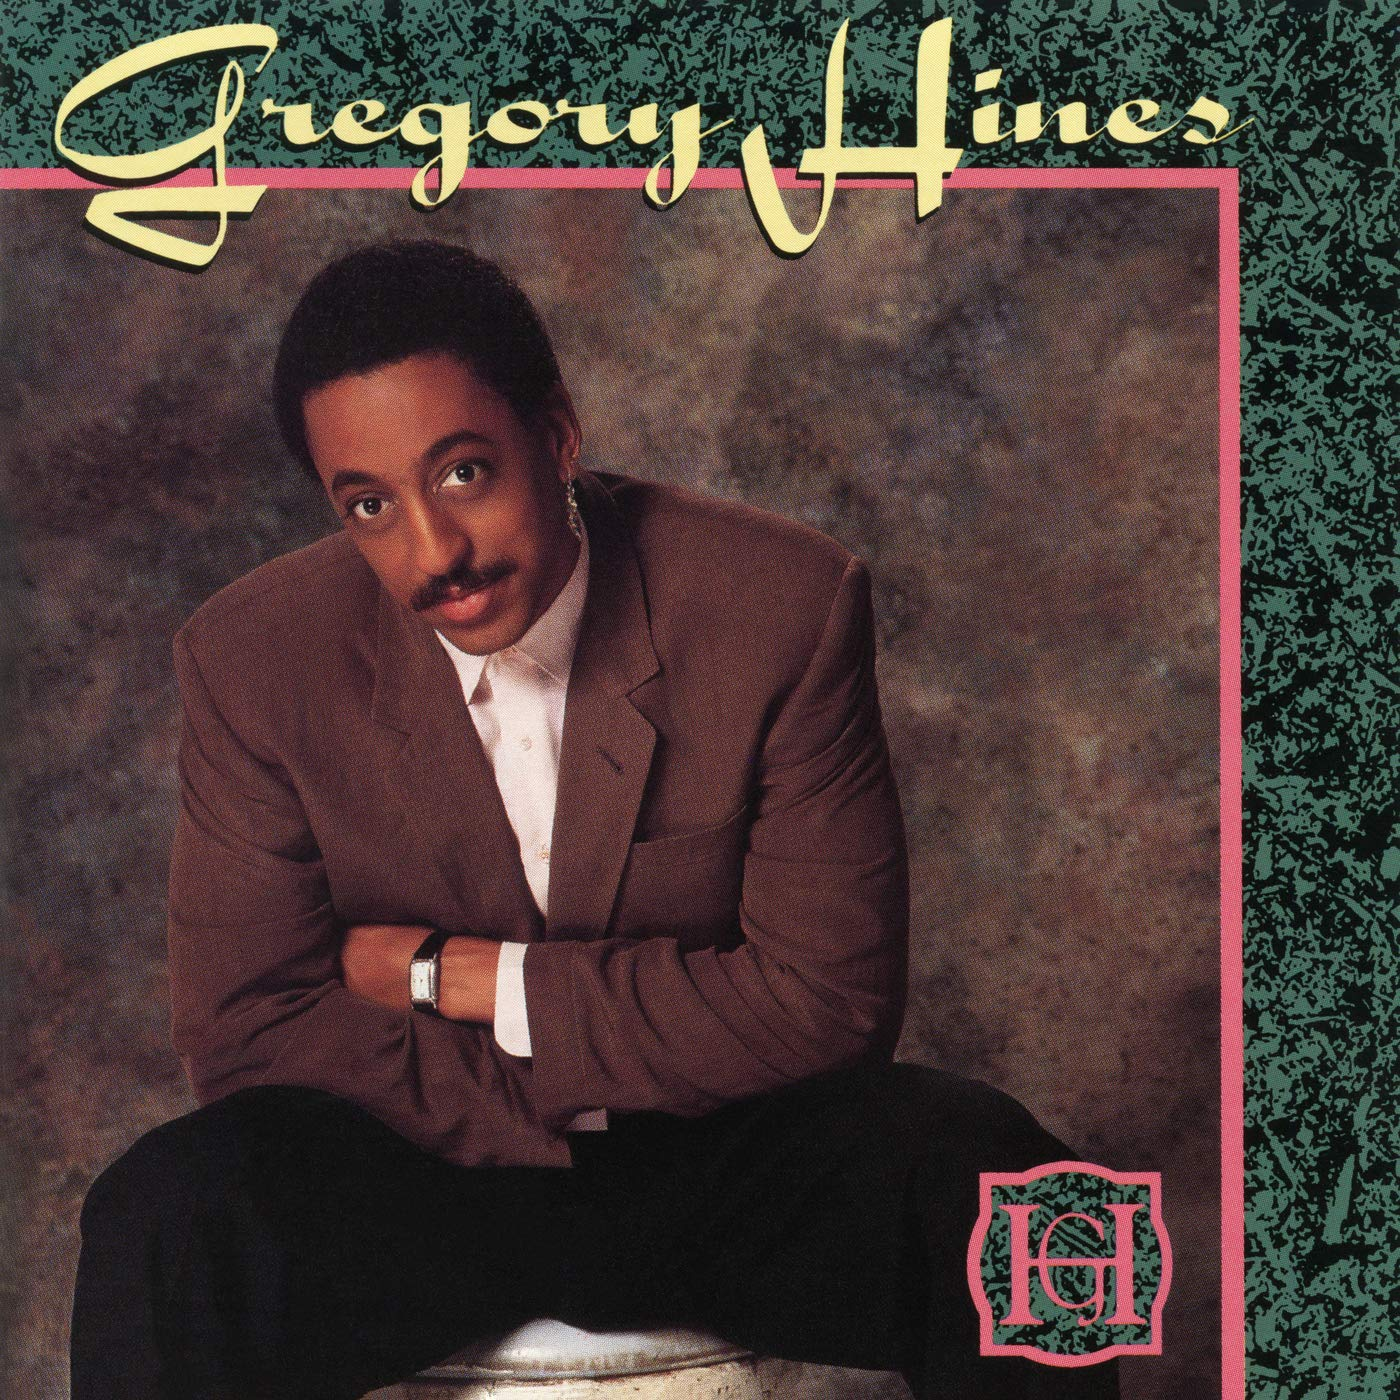 Gregory Hines – Gregory Hines (1988) [FLAC]